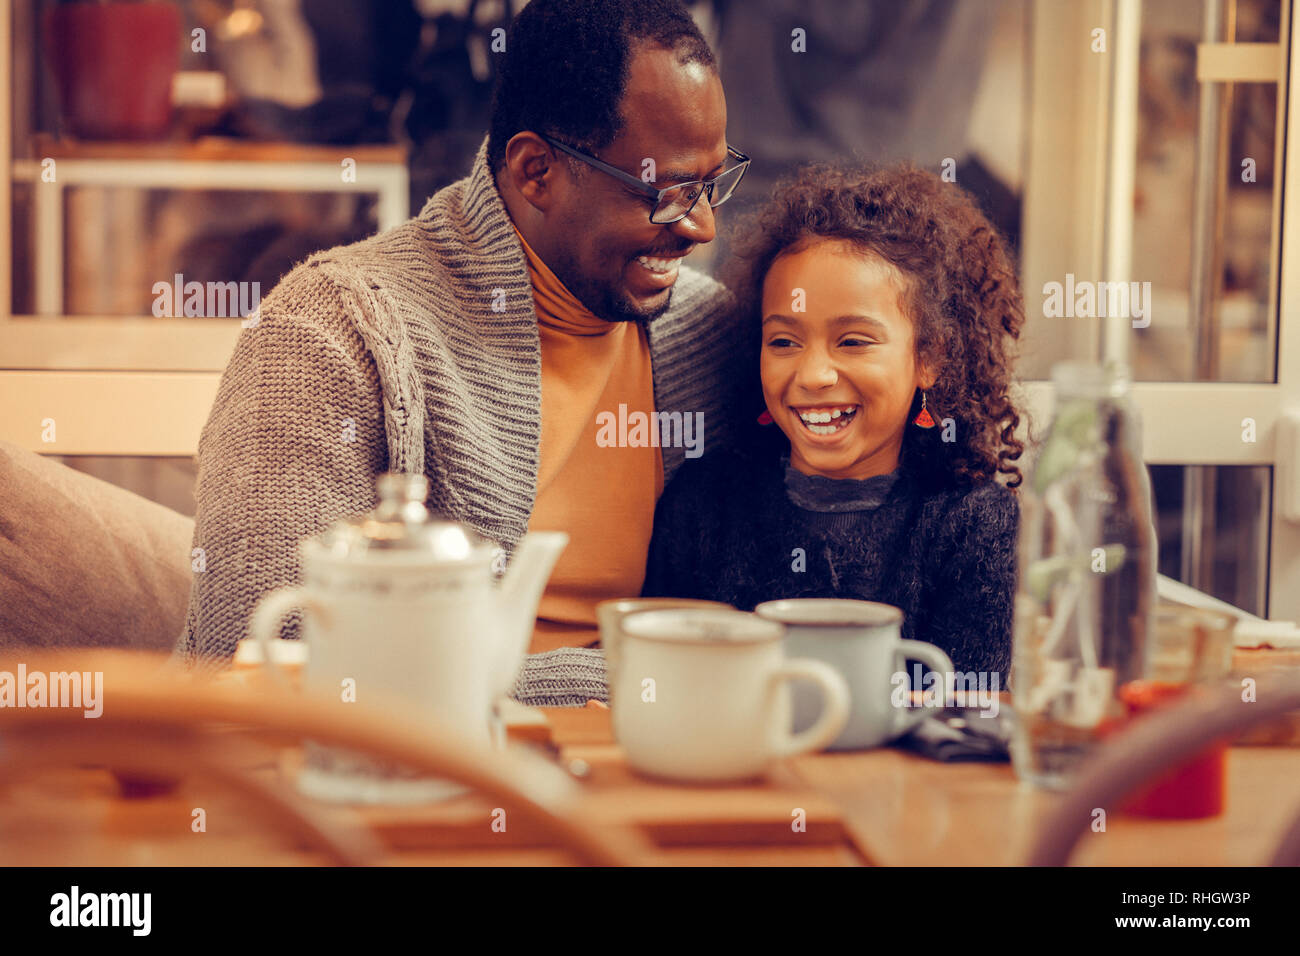 Cheerful cute curly daughter laughing while speaking with father - Stock Image